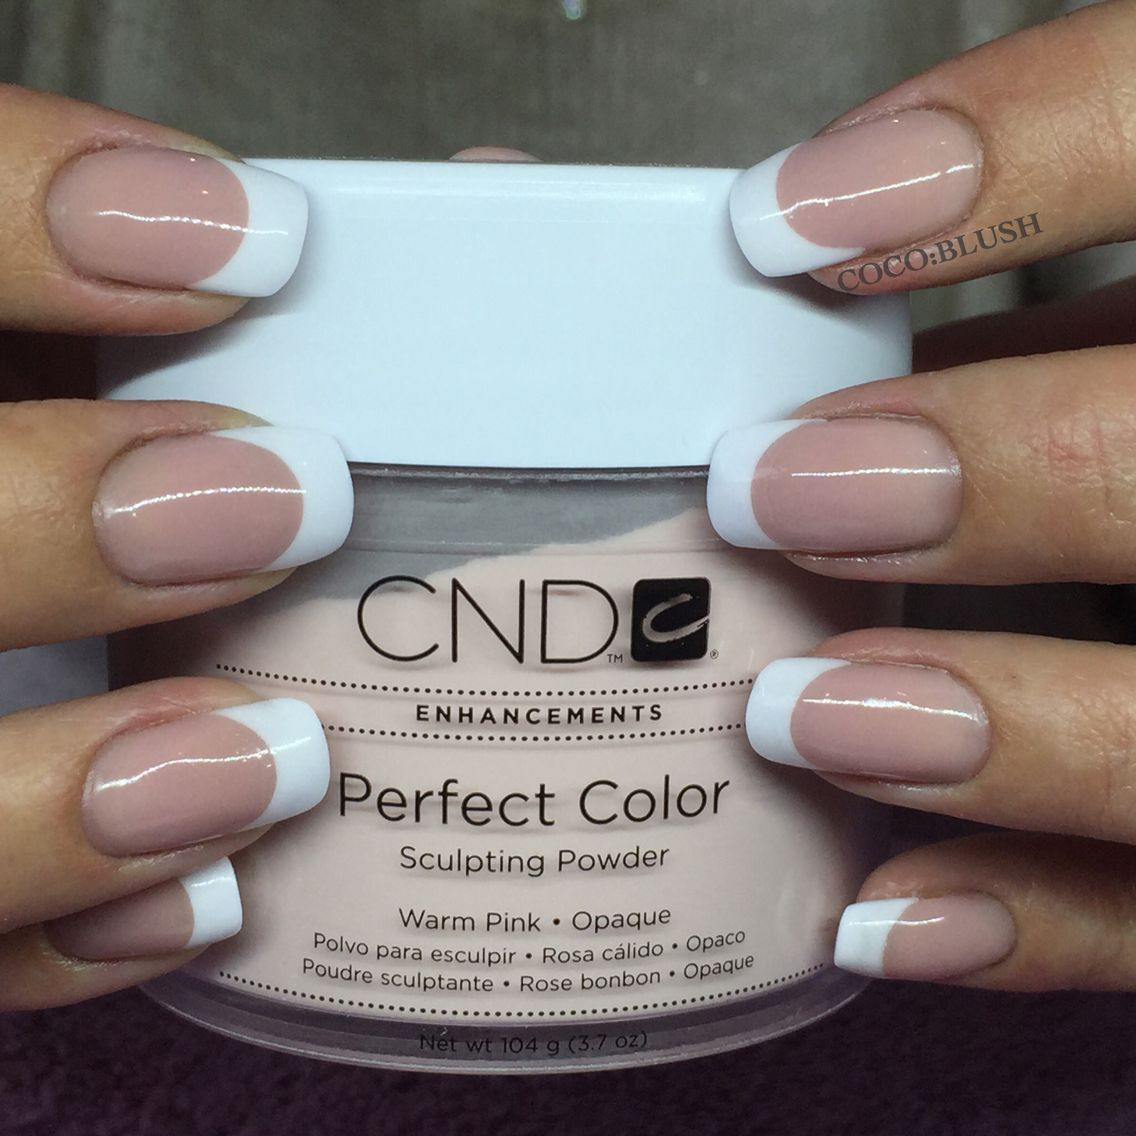 Chrome Nail Powder Cnd: Forever French Cnd Acrylic Enhancements. Pink And Whites